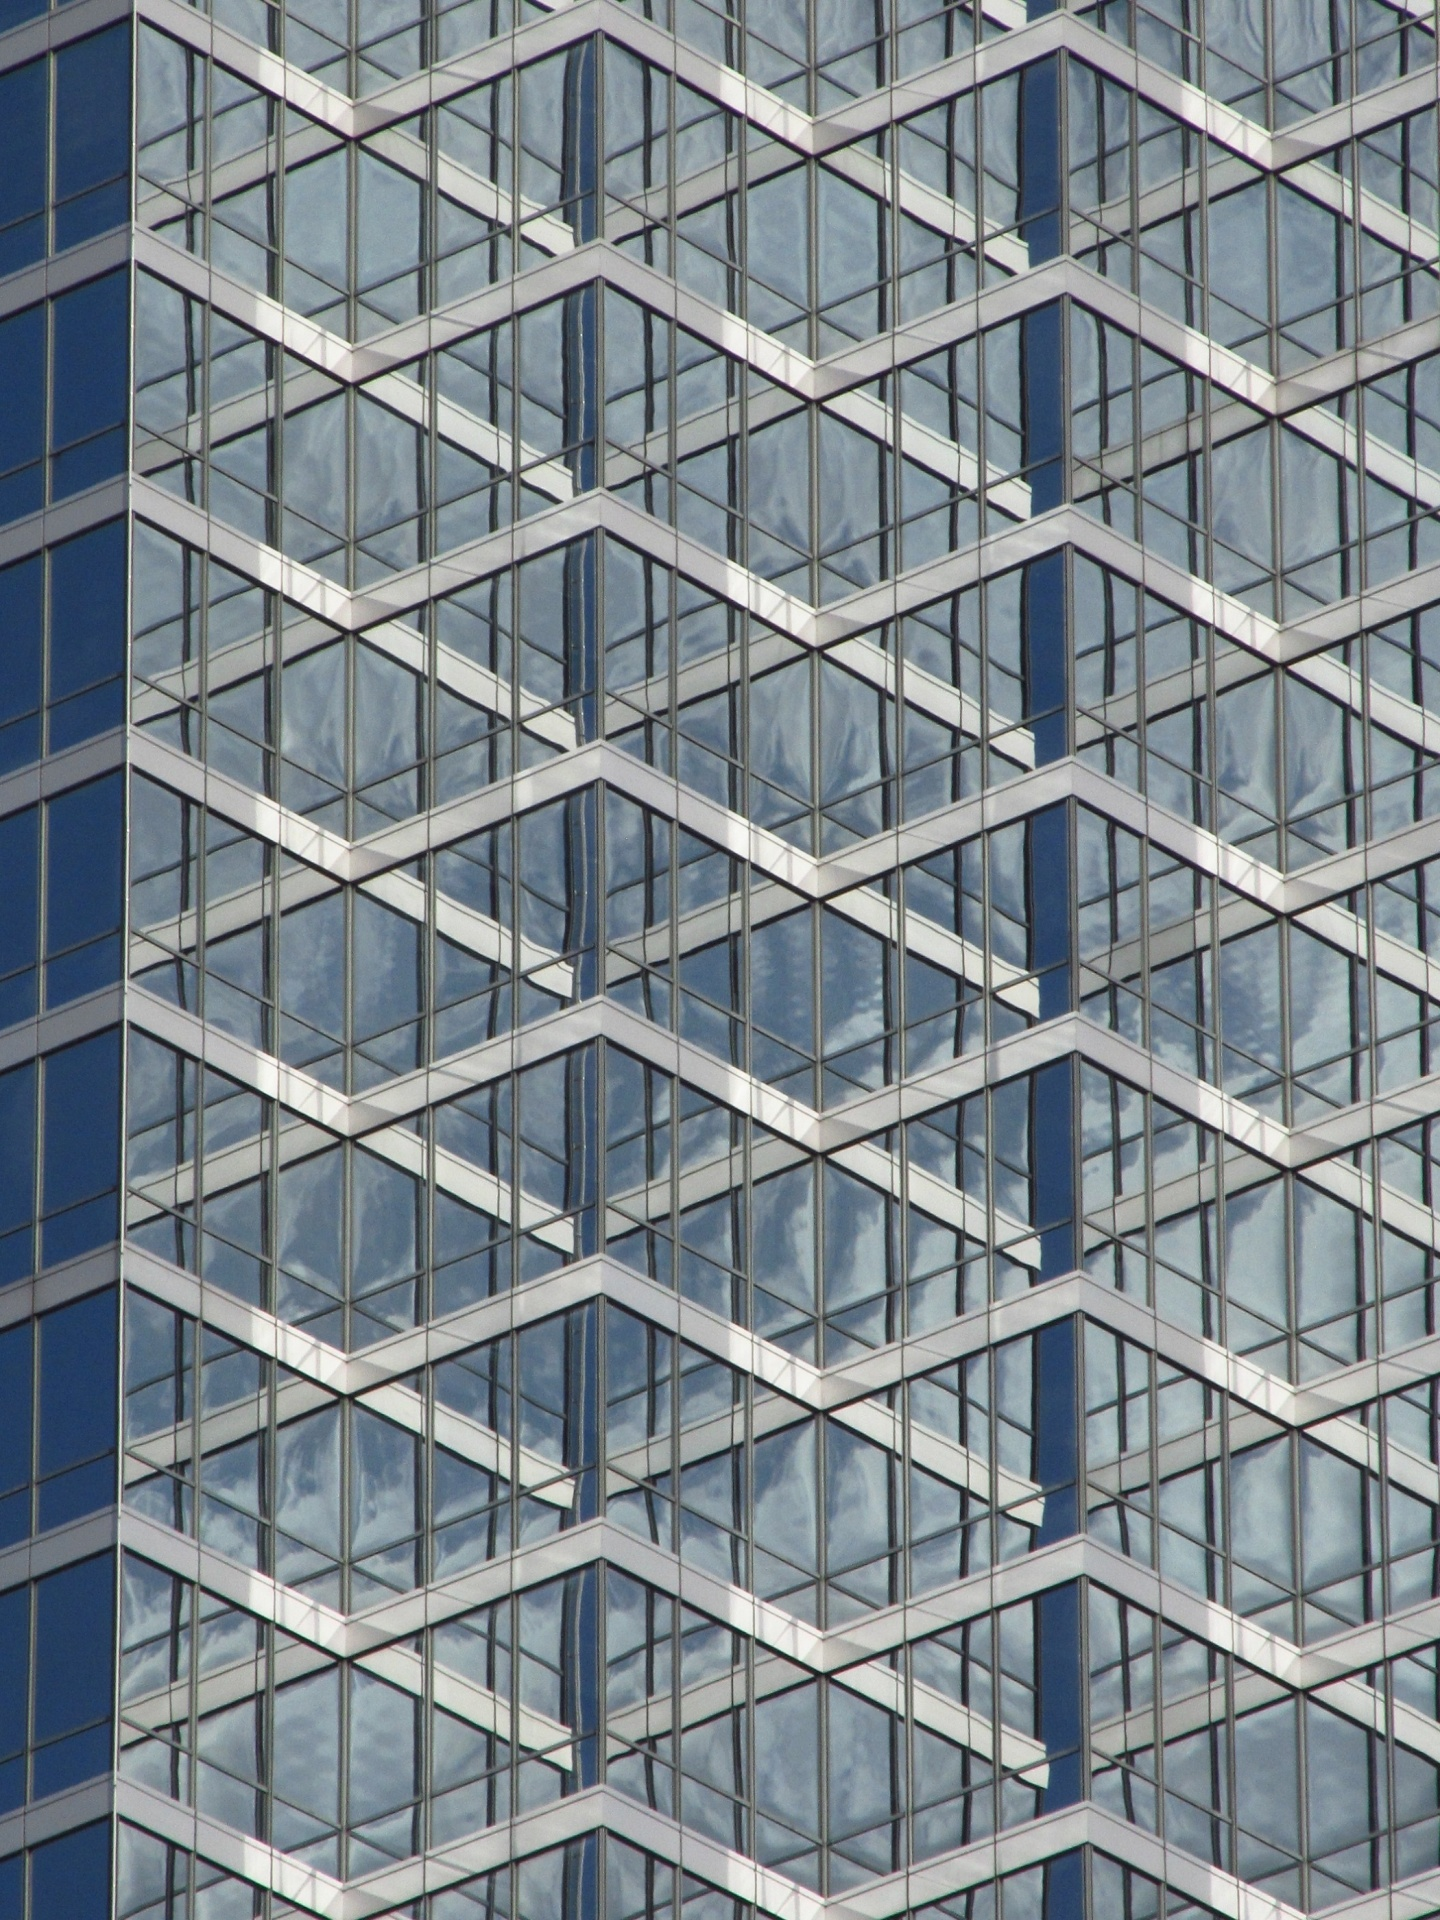 Black Abstract Wallpaper Office Building Glass Facade Free Stock Photo Public